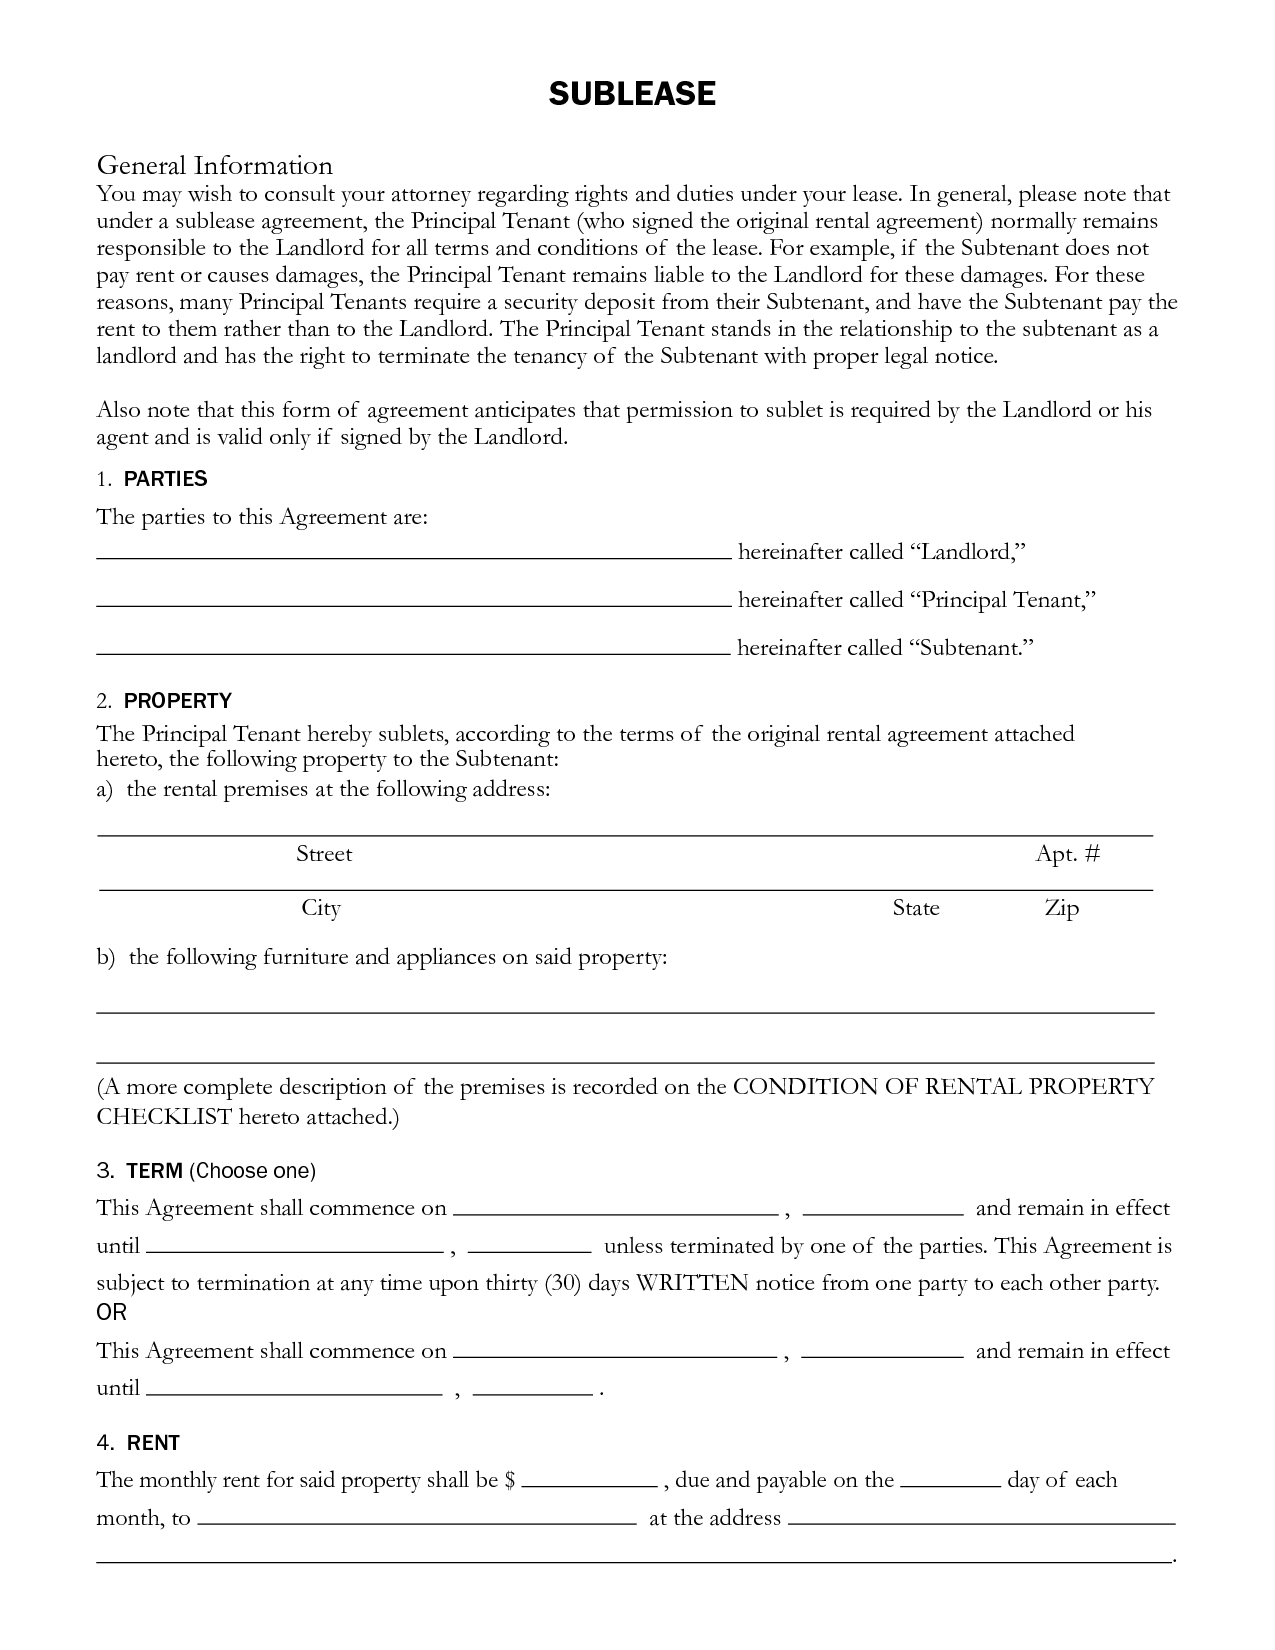 Sublet Rental Agreement SUBLEASE General Information by ayj58676 – Sublet Contract Template